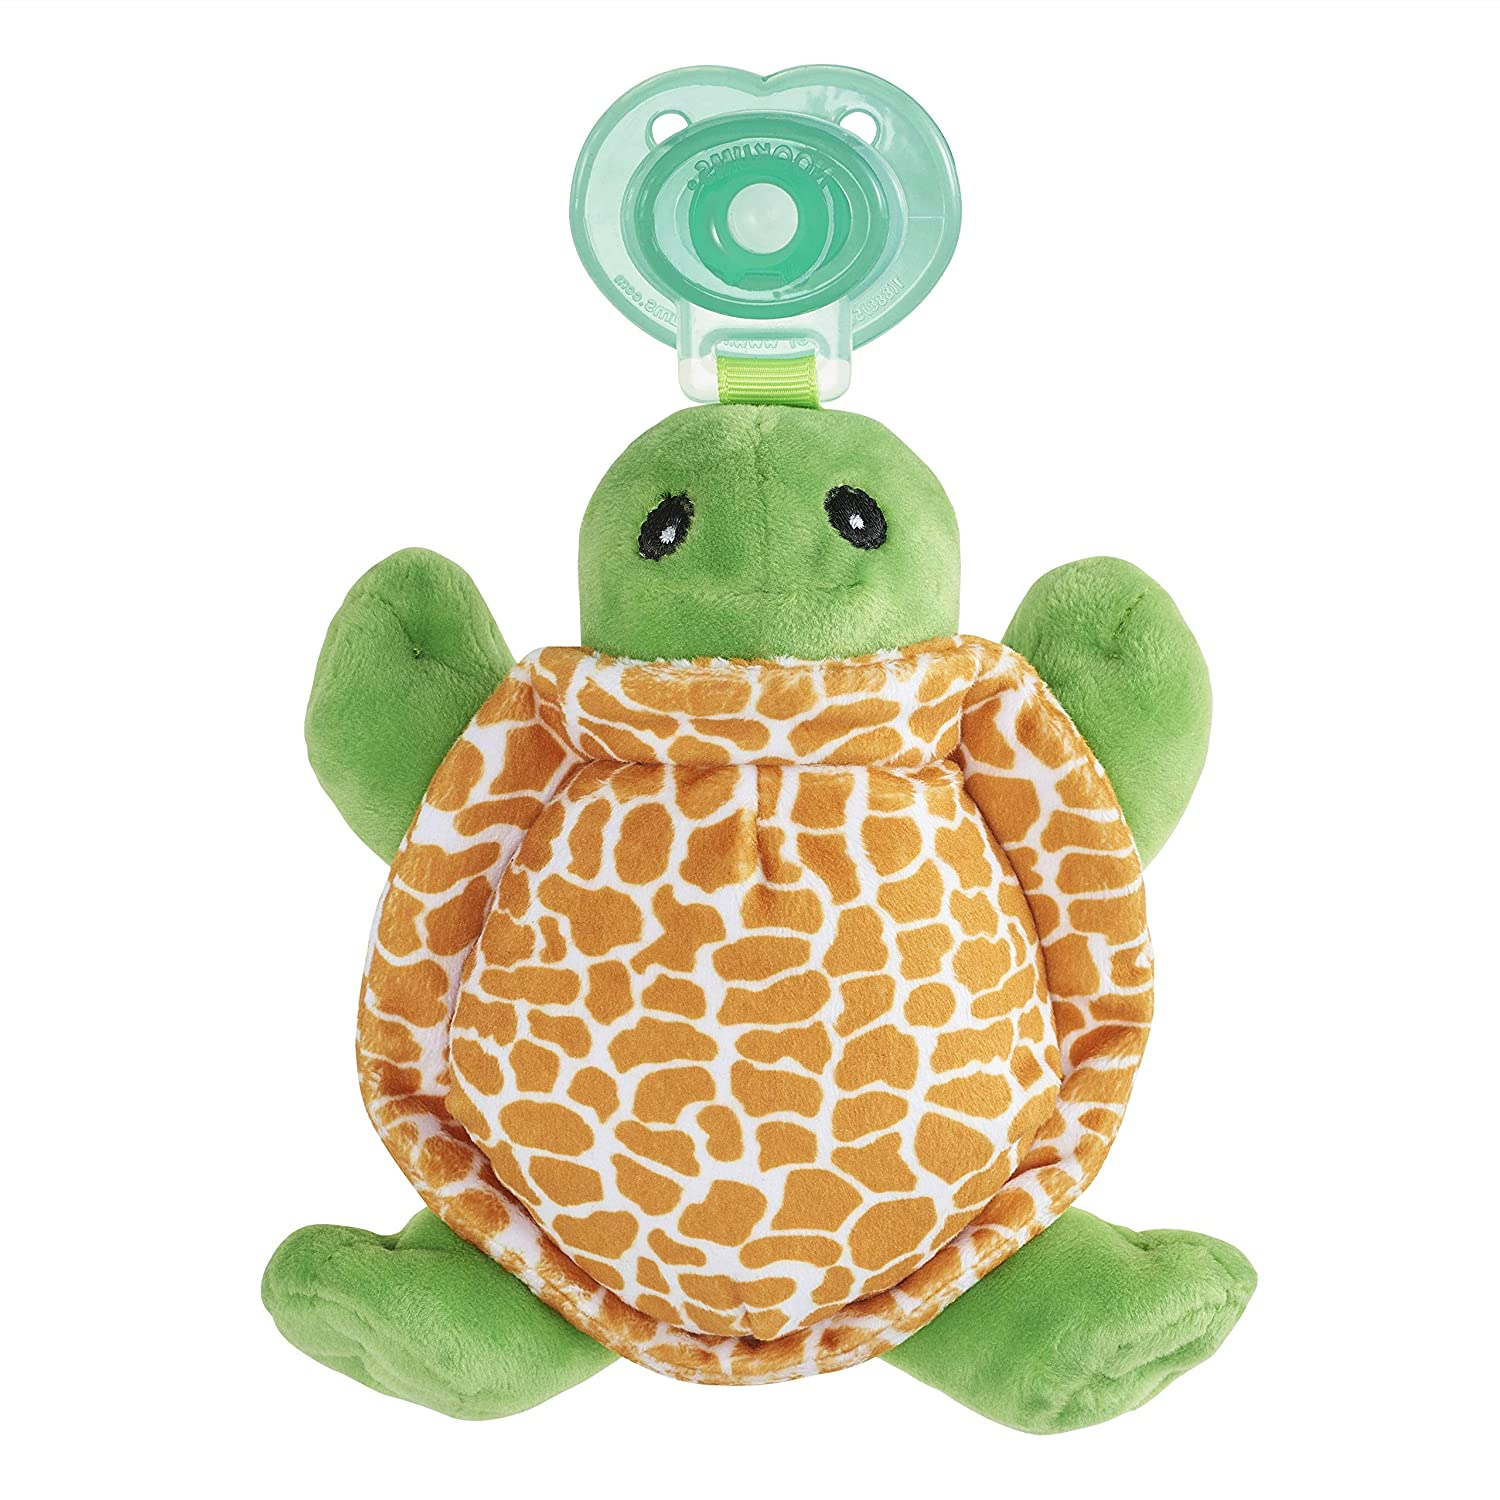 Amazon.com: nookums paci-plushies Turtle – Soporte de ...